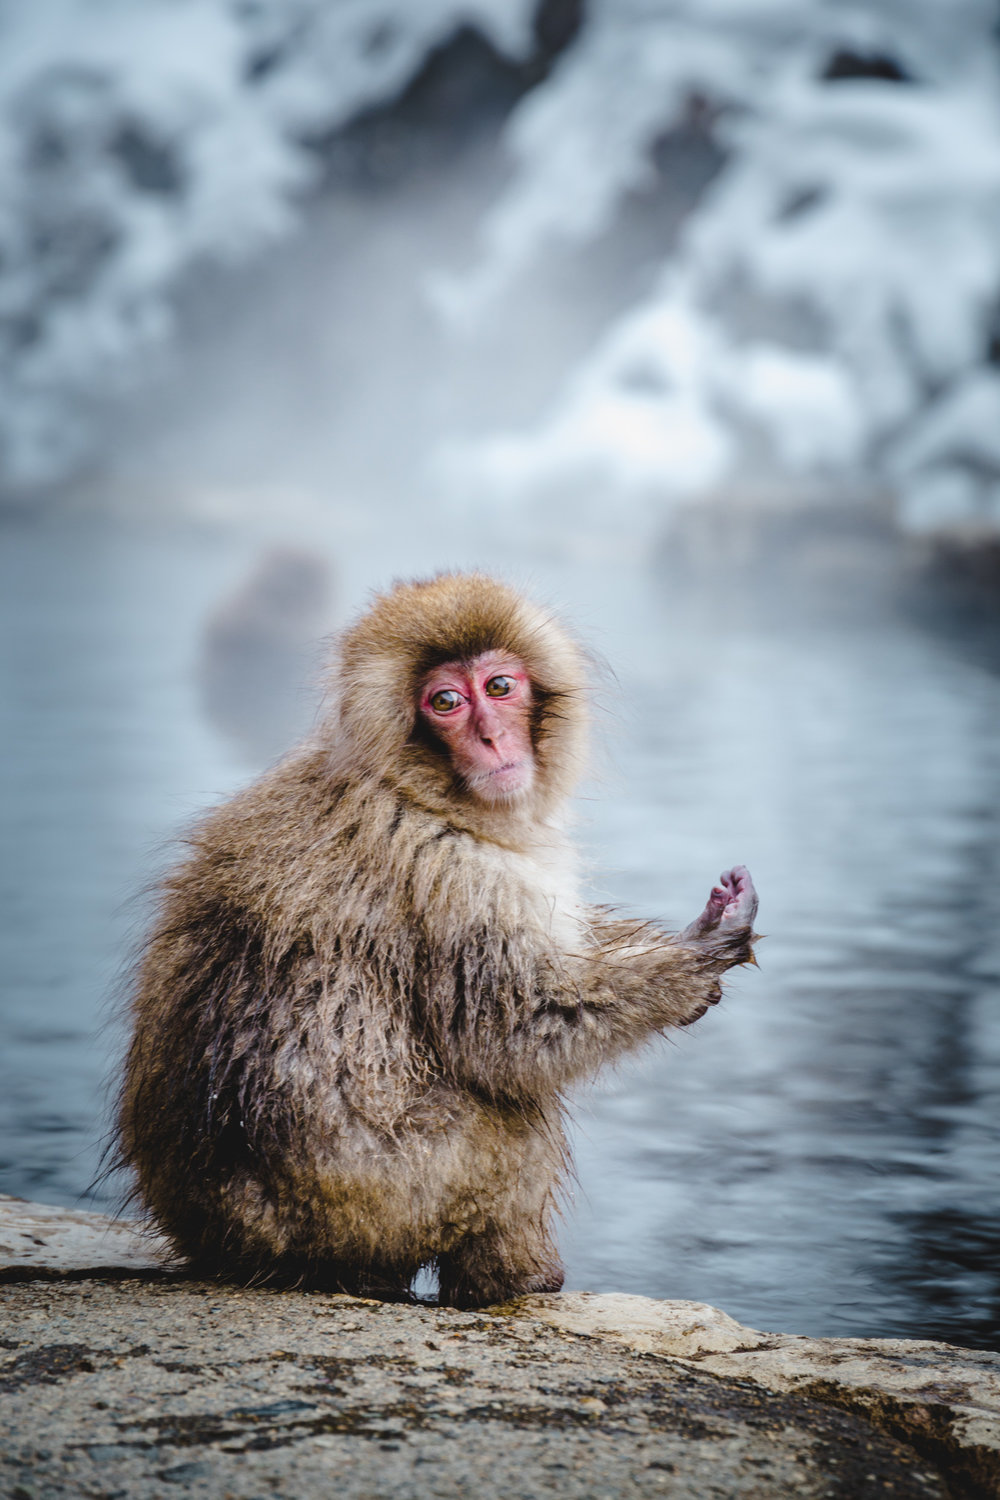 Snow Monkey Park: Nagano in Winter